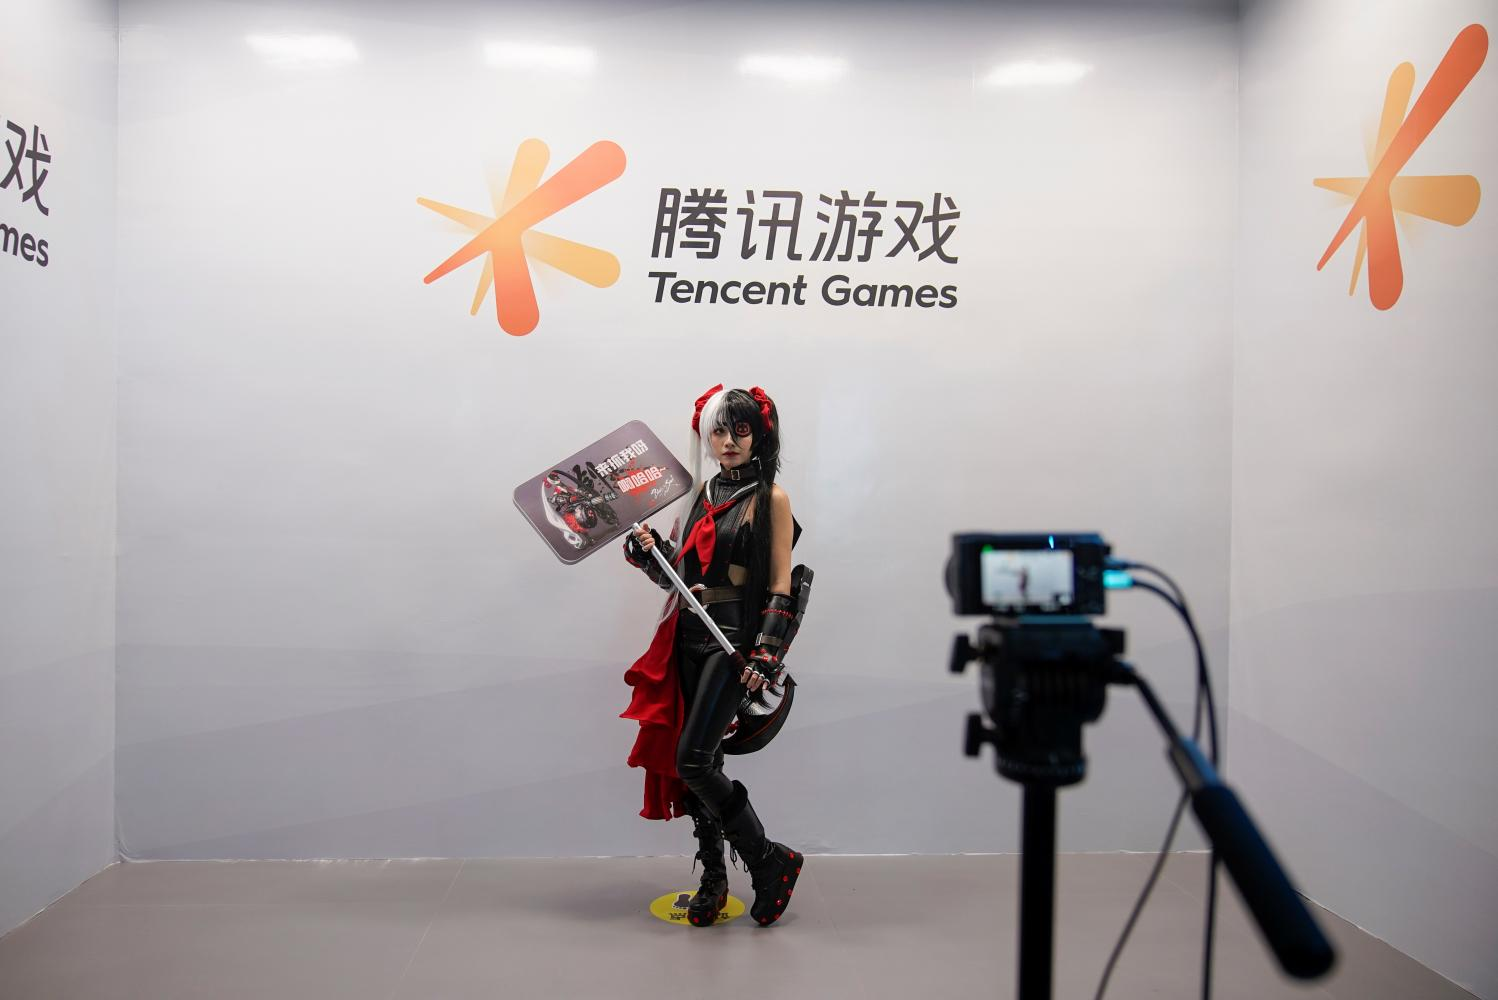 A cosplay fan poses for a photo at a Tencent Games booth during the China Digital Entertainment Expo and Conference. Shares of the company took a plunge yesterday.(Photo: Reuters)